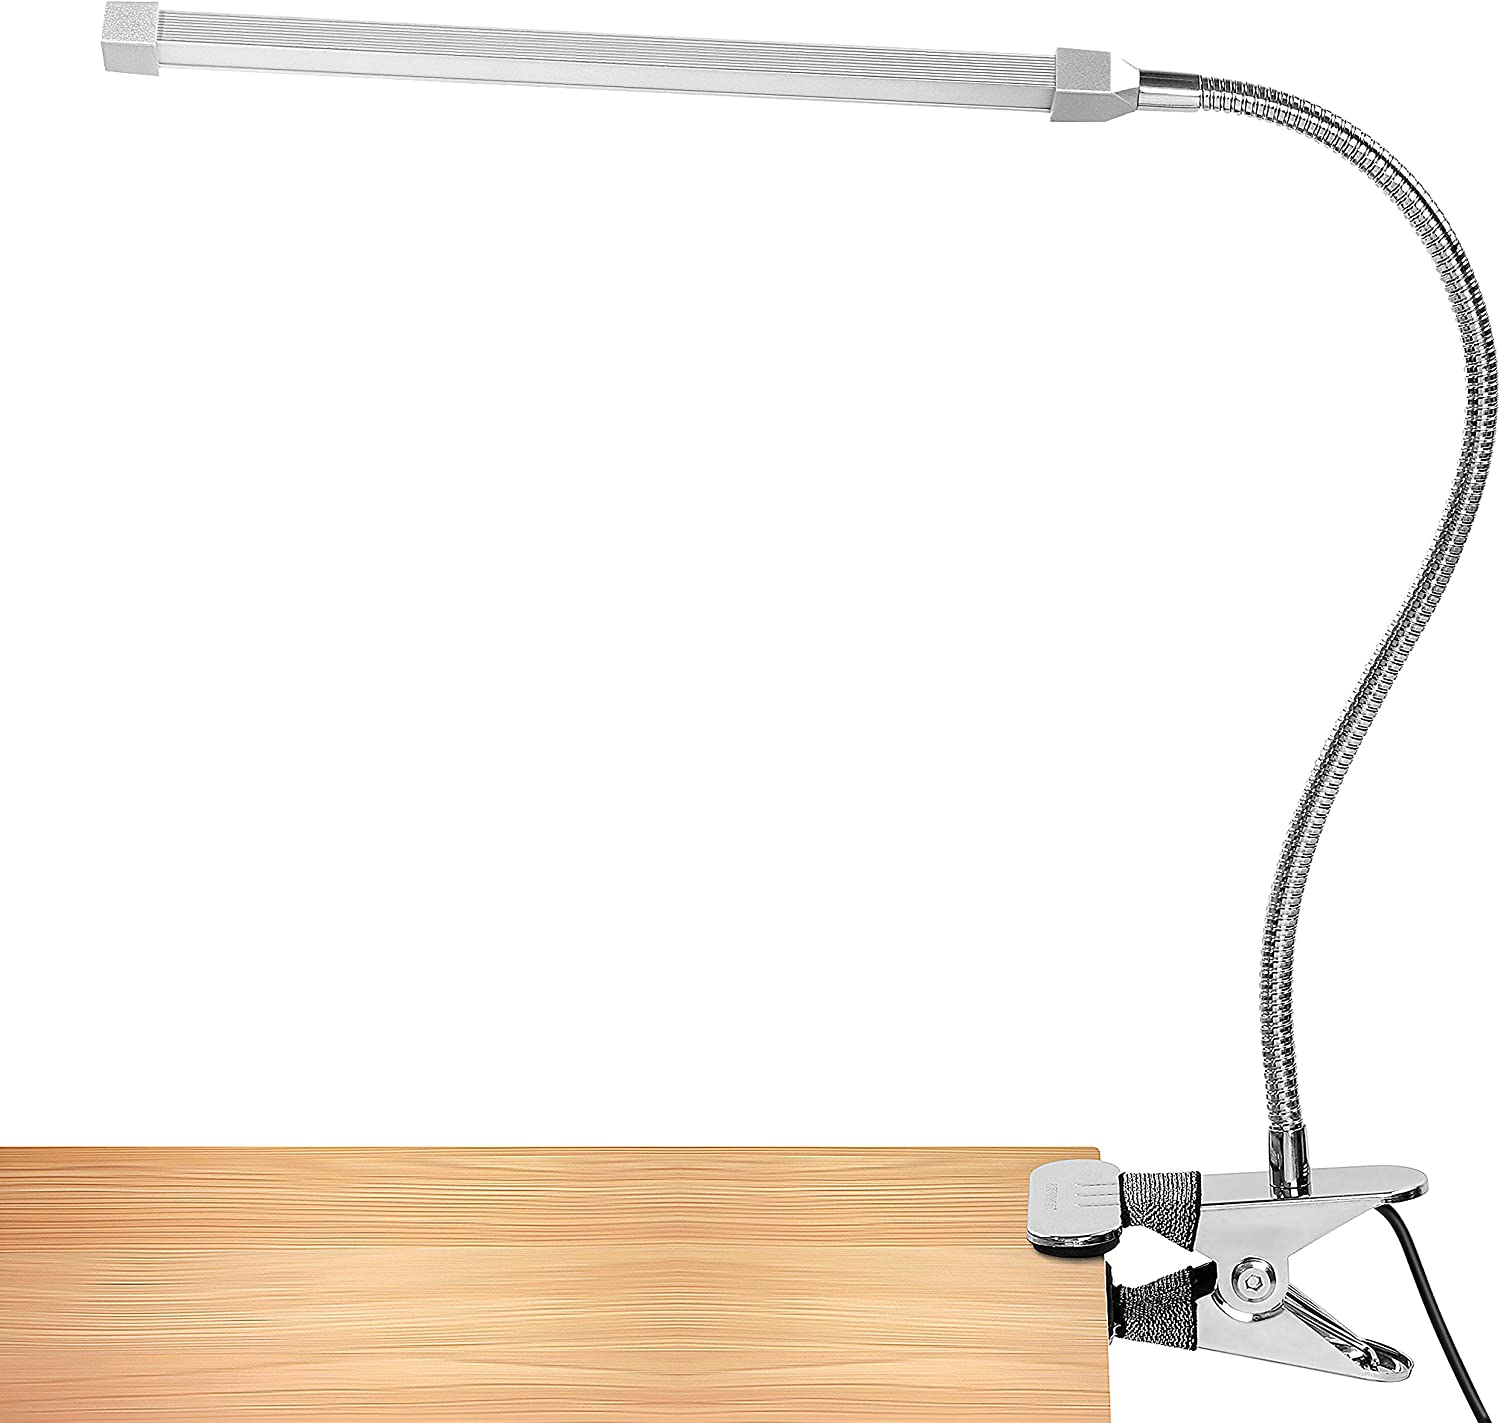 LEPOWER 5W LED Clip on Light, Reading Light with Flexible Gooseneck, Eye Care, 2 Color x 2 Brightness Night Light Clip on for Desk, Bed headboard and Piano (Silver)